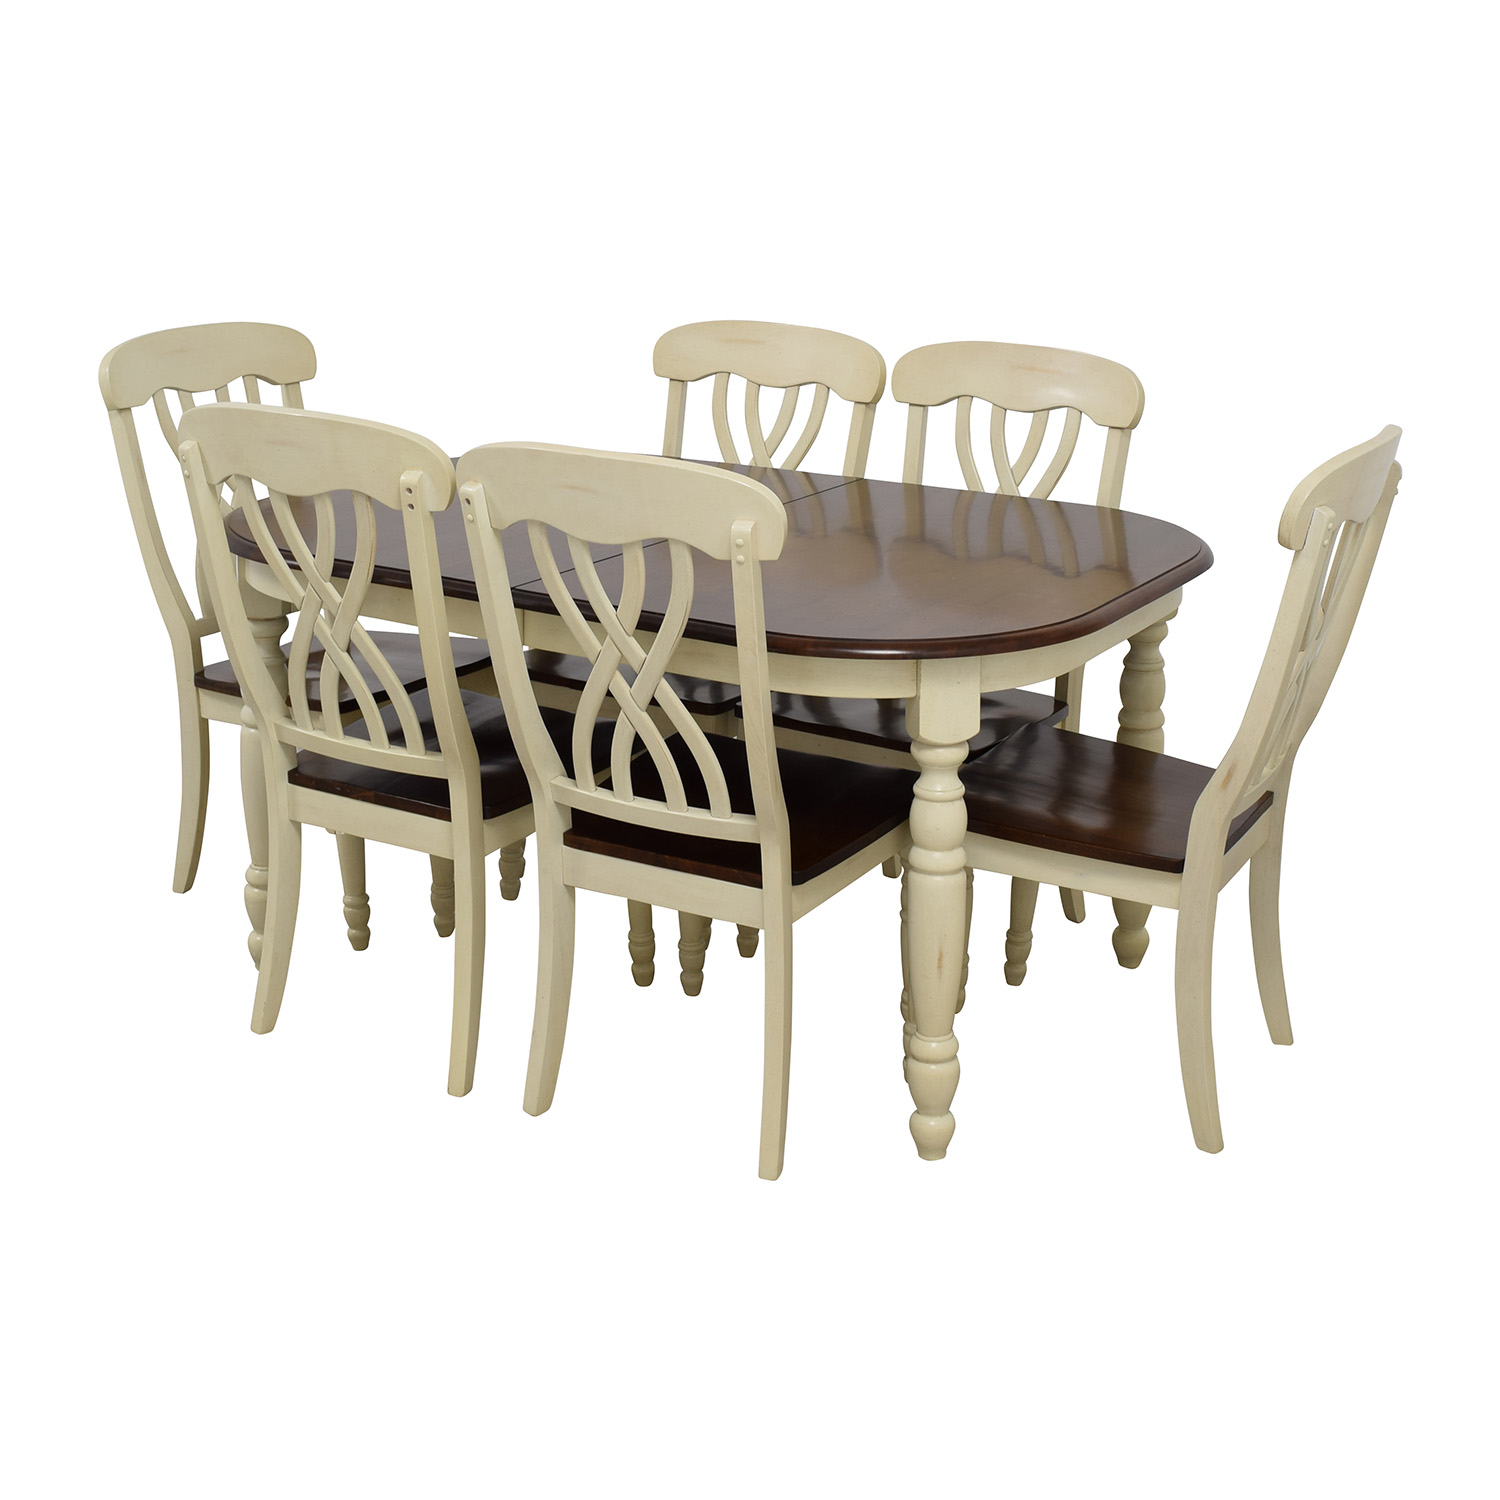 Extendable Wood Dining Table with Chairs on sale